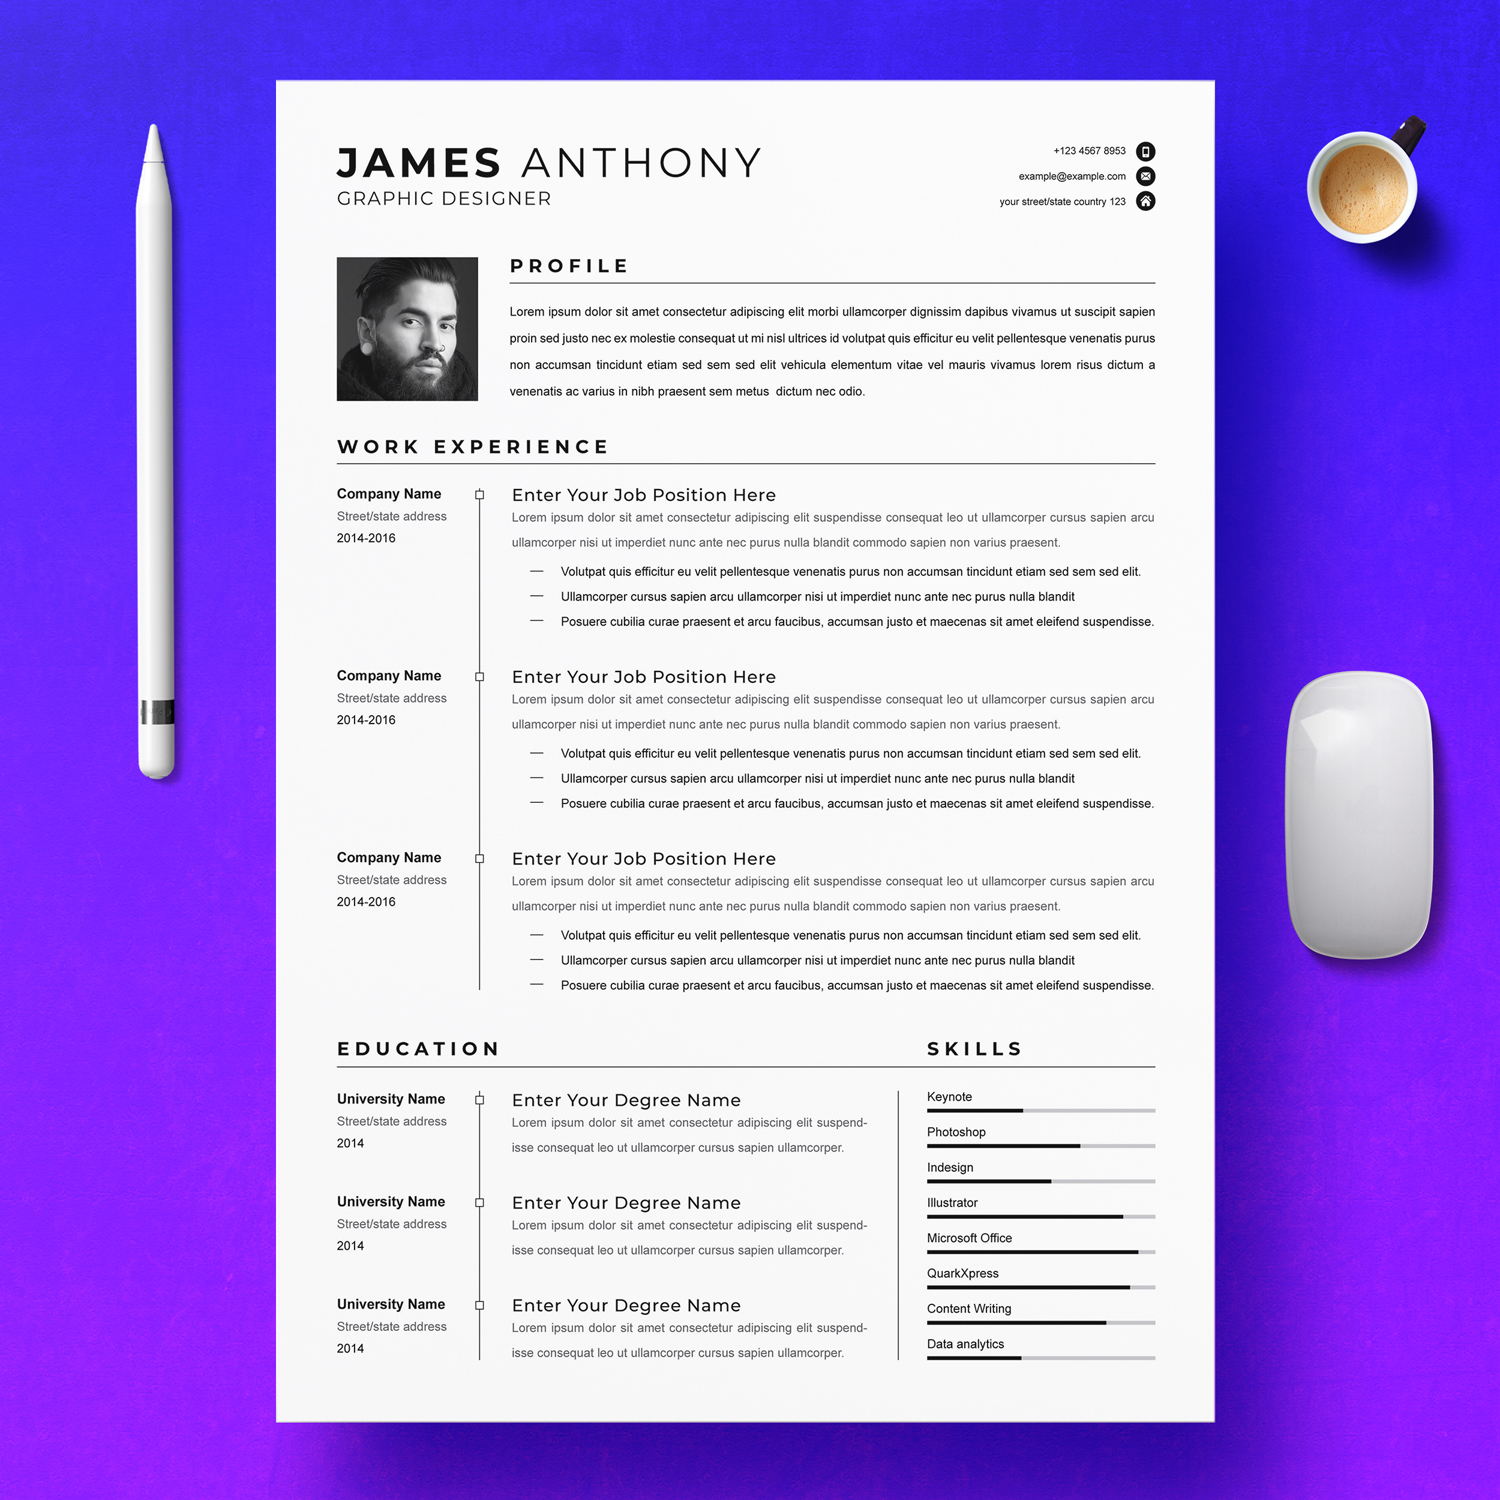 Graphic Designer Resume 2021